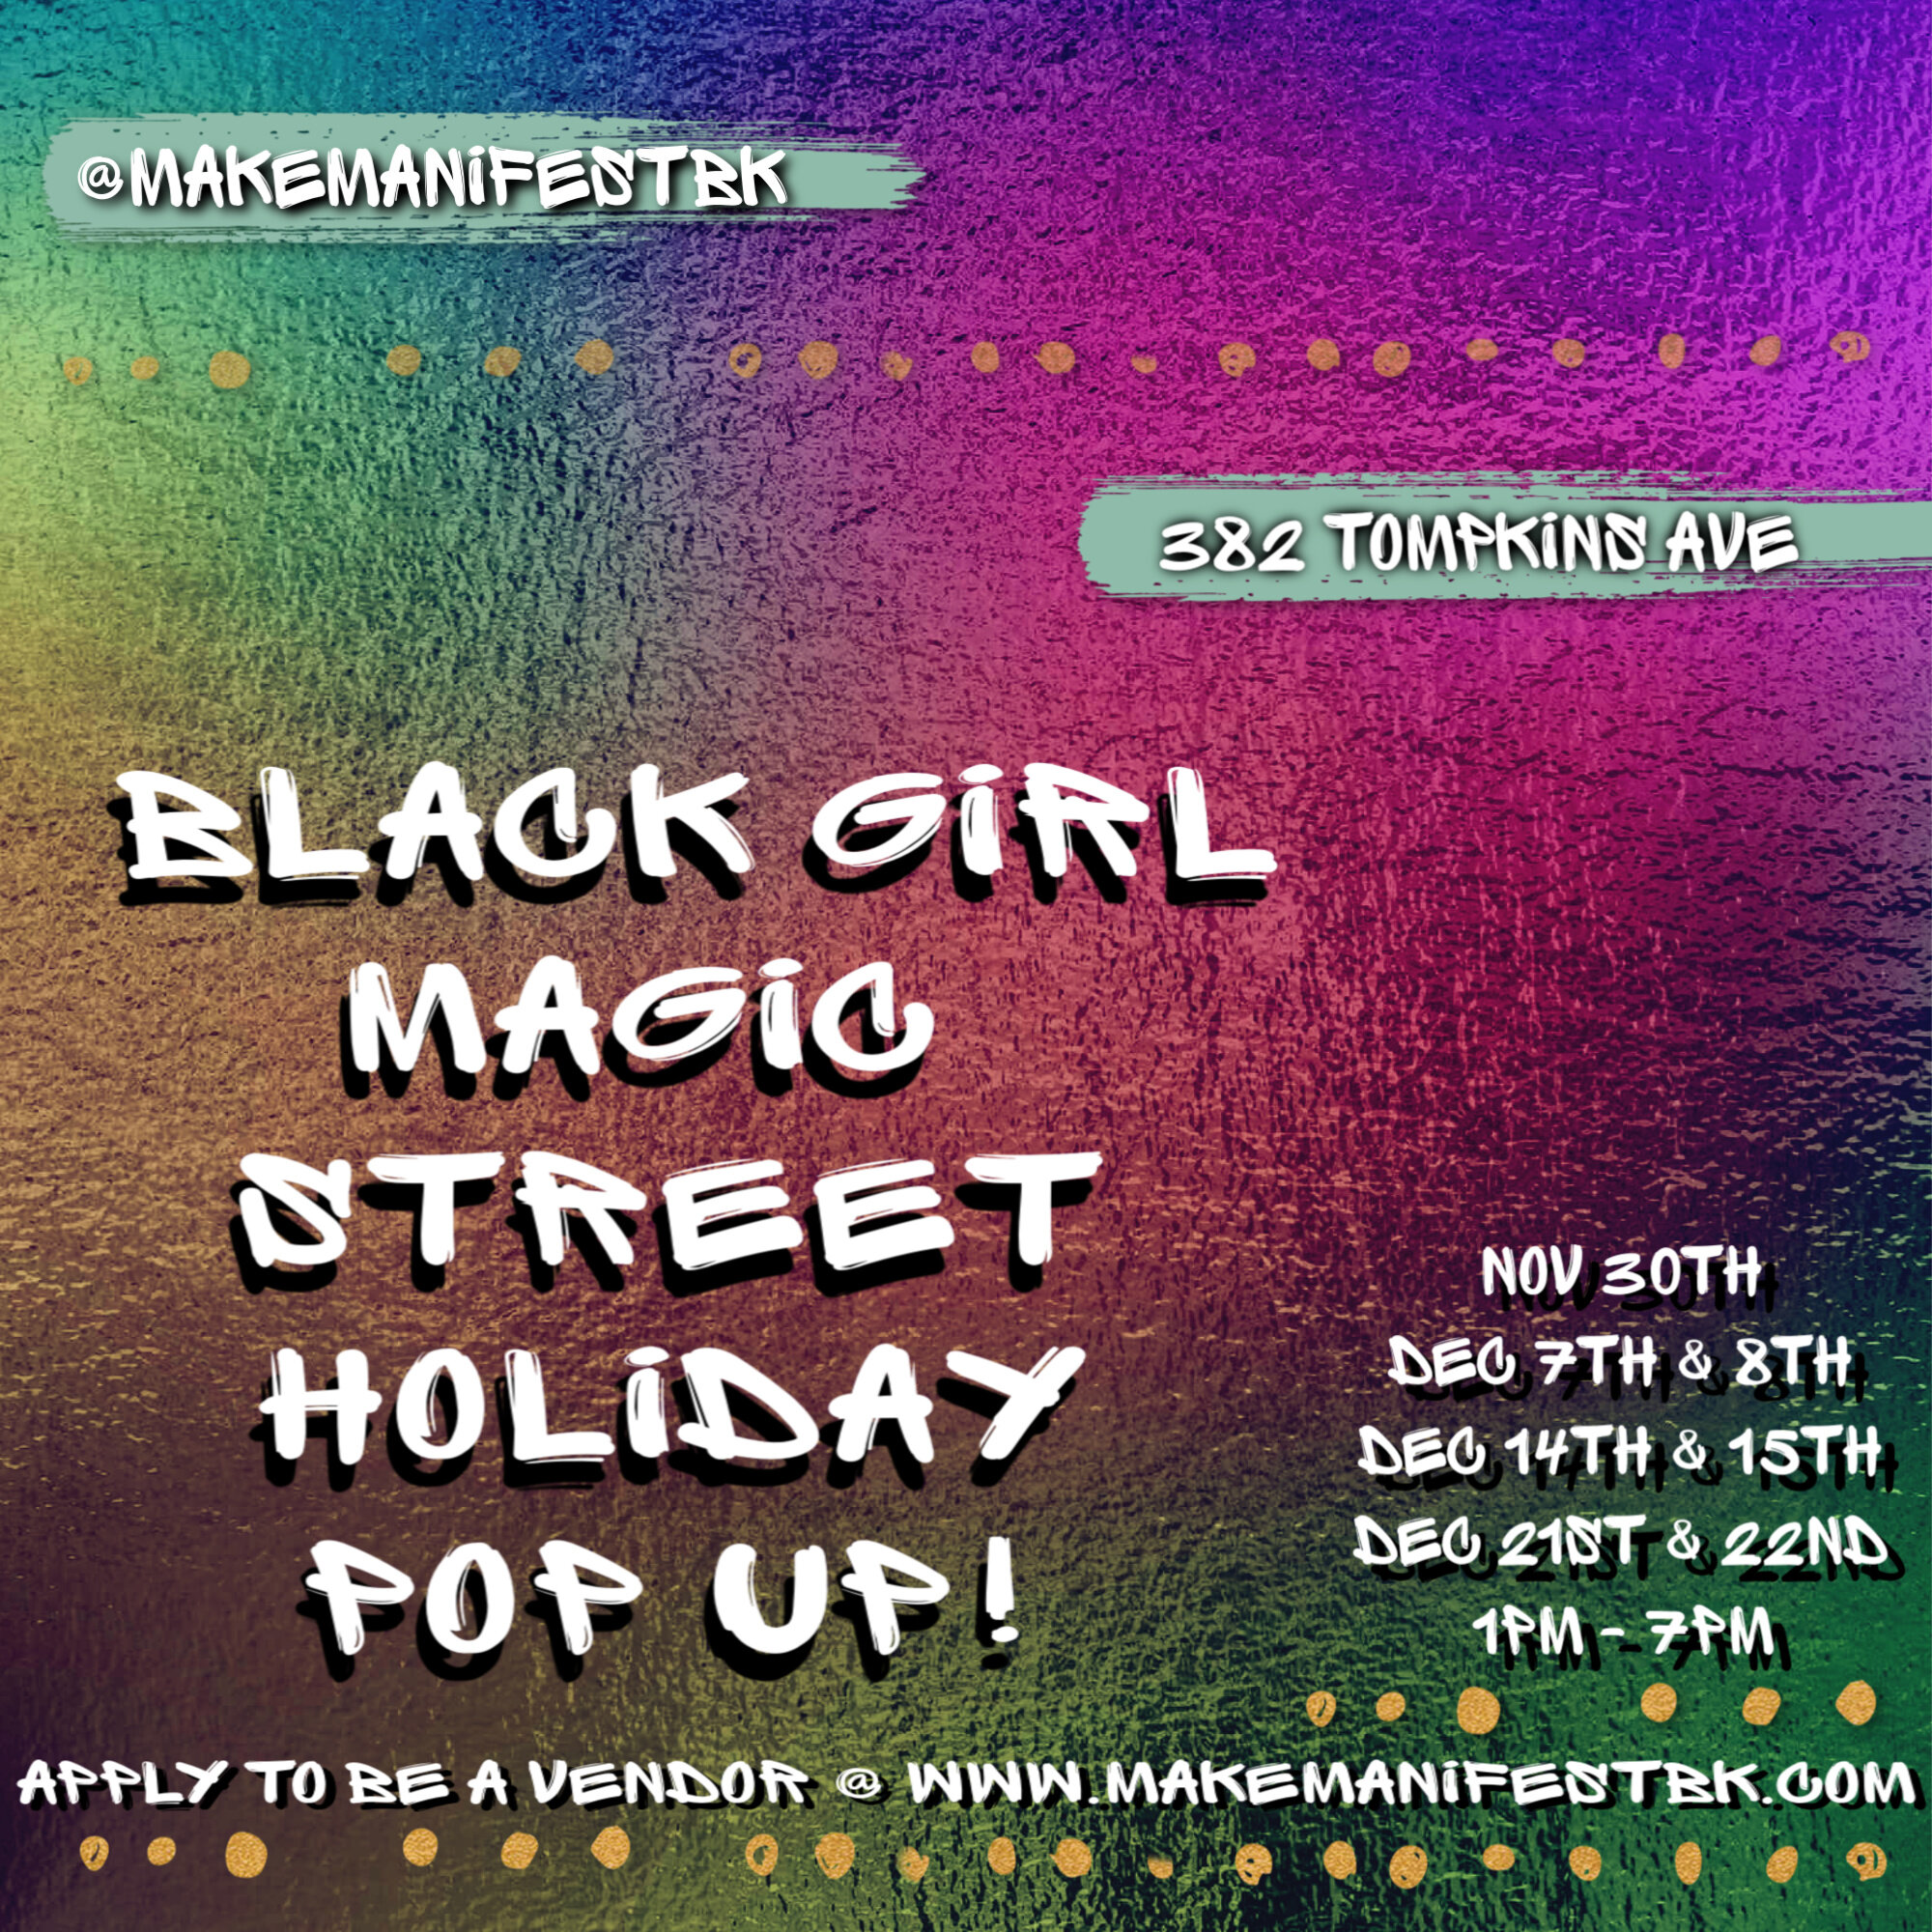 2nd Annual Black Girl Magic Street PoP uP Series! A beautifully curated series of Holiday Pop Up Shops @ the Make Manifest Space! - VENDOR SPACES ARE LIMITED!